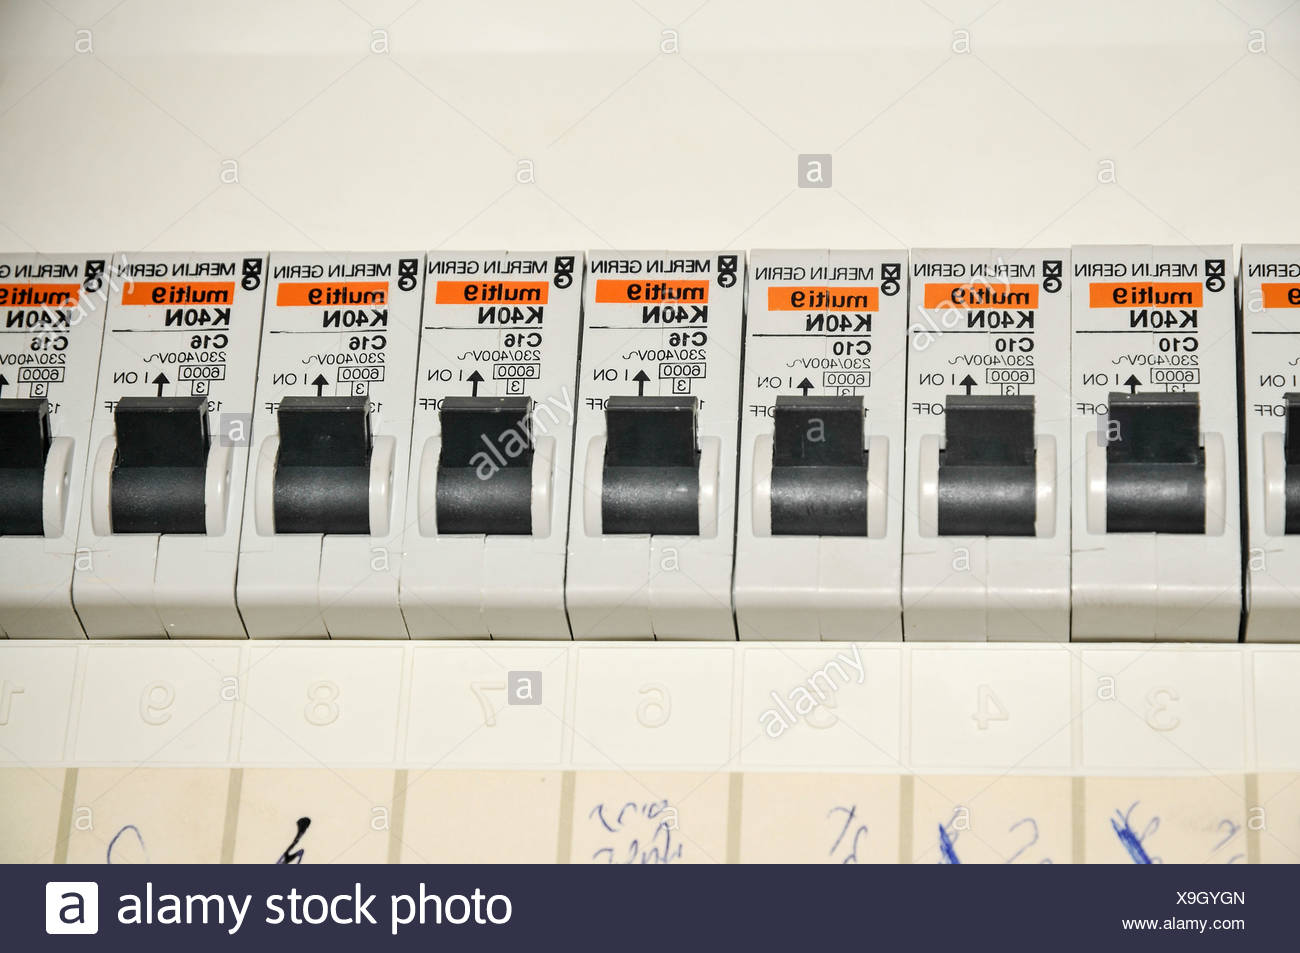 Domestic fuse box close up with trip switches circuit breakers - Stock Image